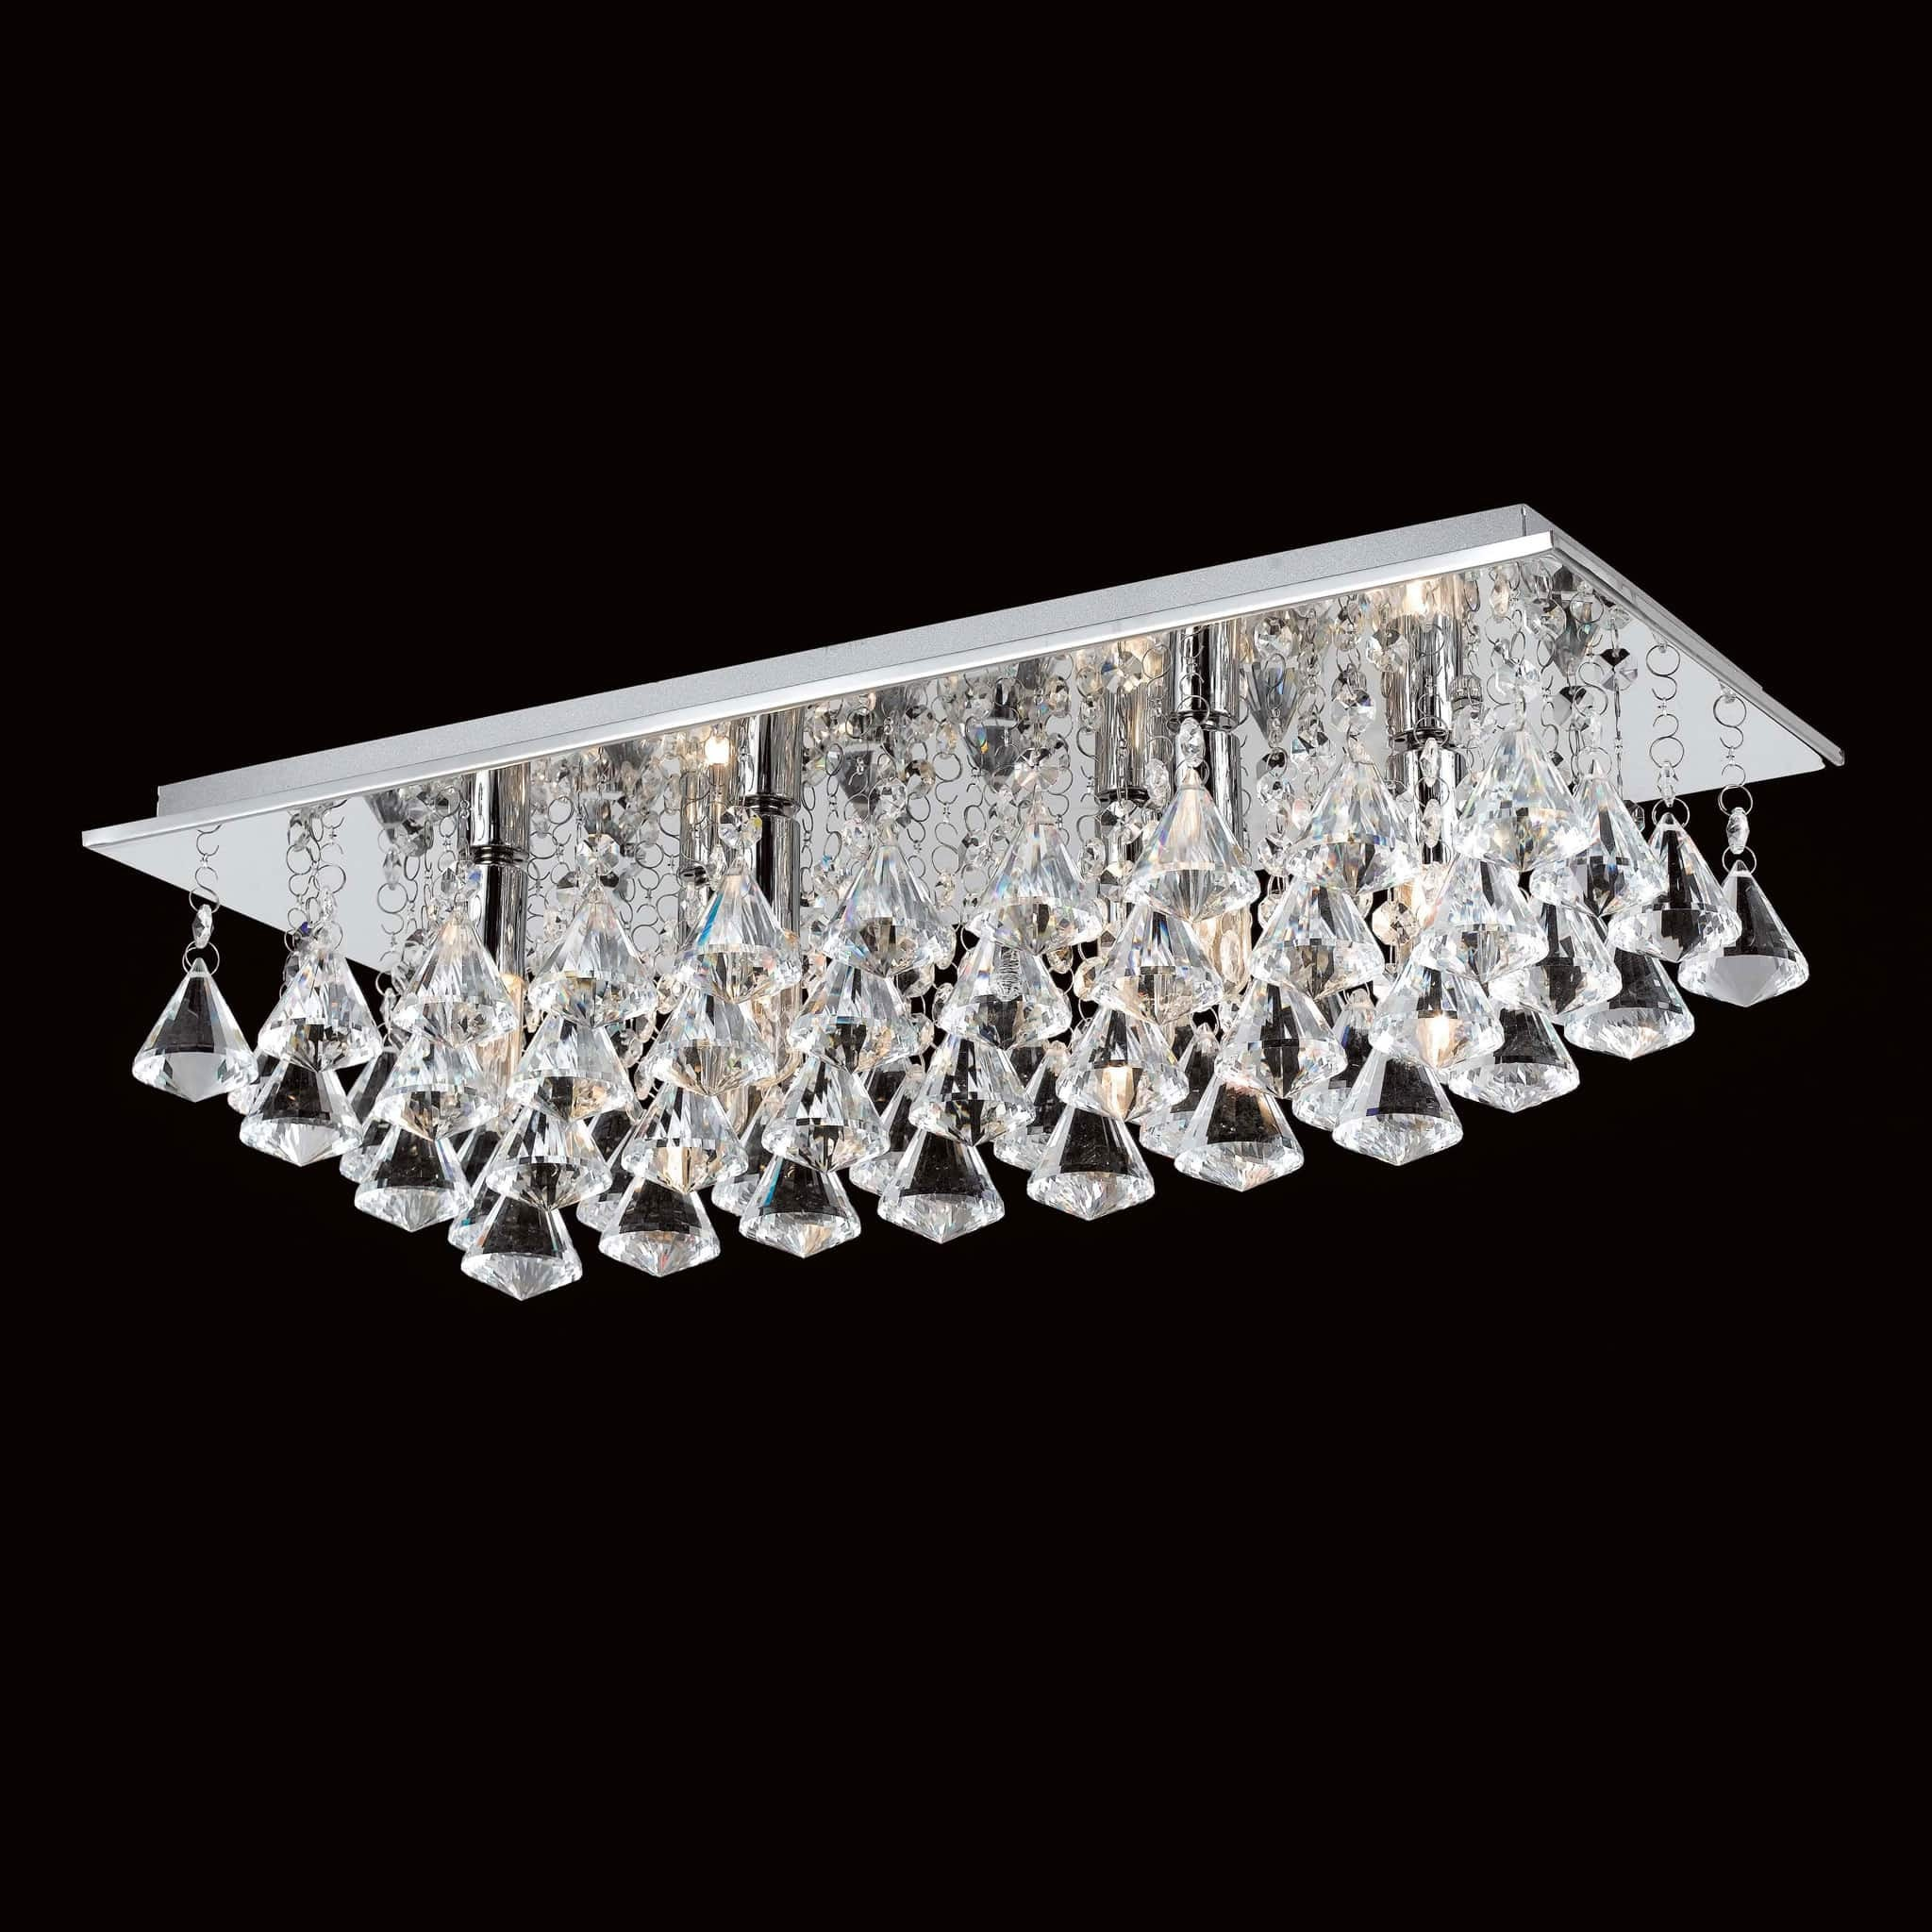 Flush Chandelier Impex parma 6 light rectangle crystal flush chandelier chandelier impex parma 6 light rectangle crystal flush chandelier cfh20111406plch audiocablefo